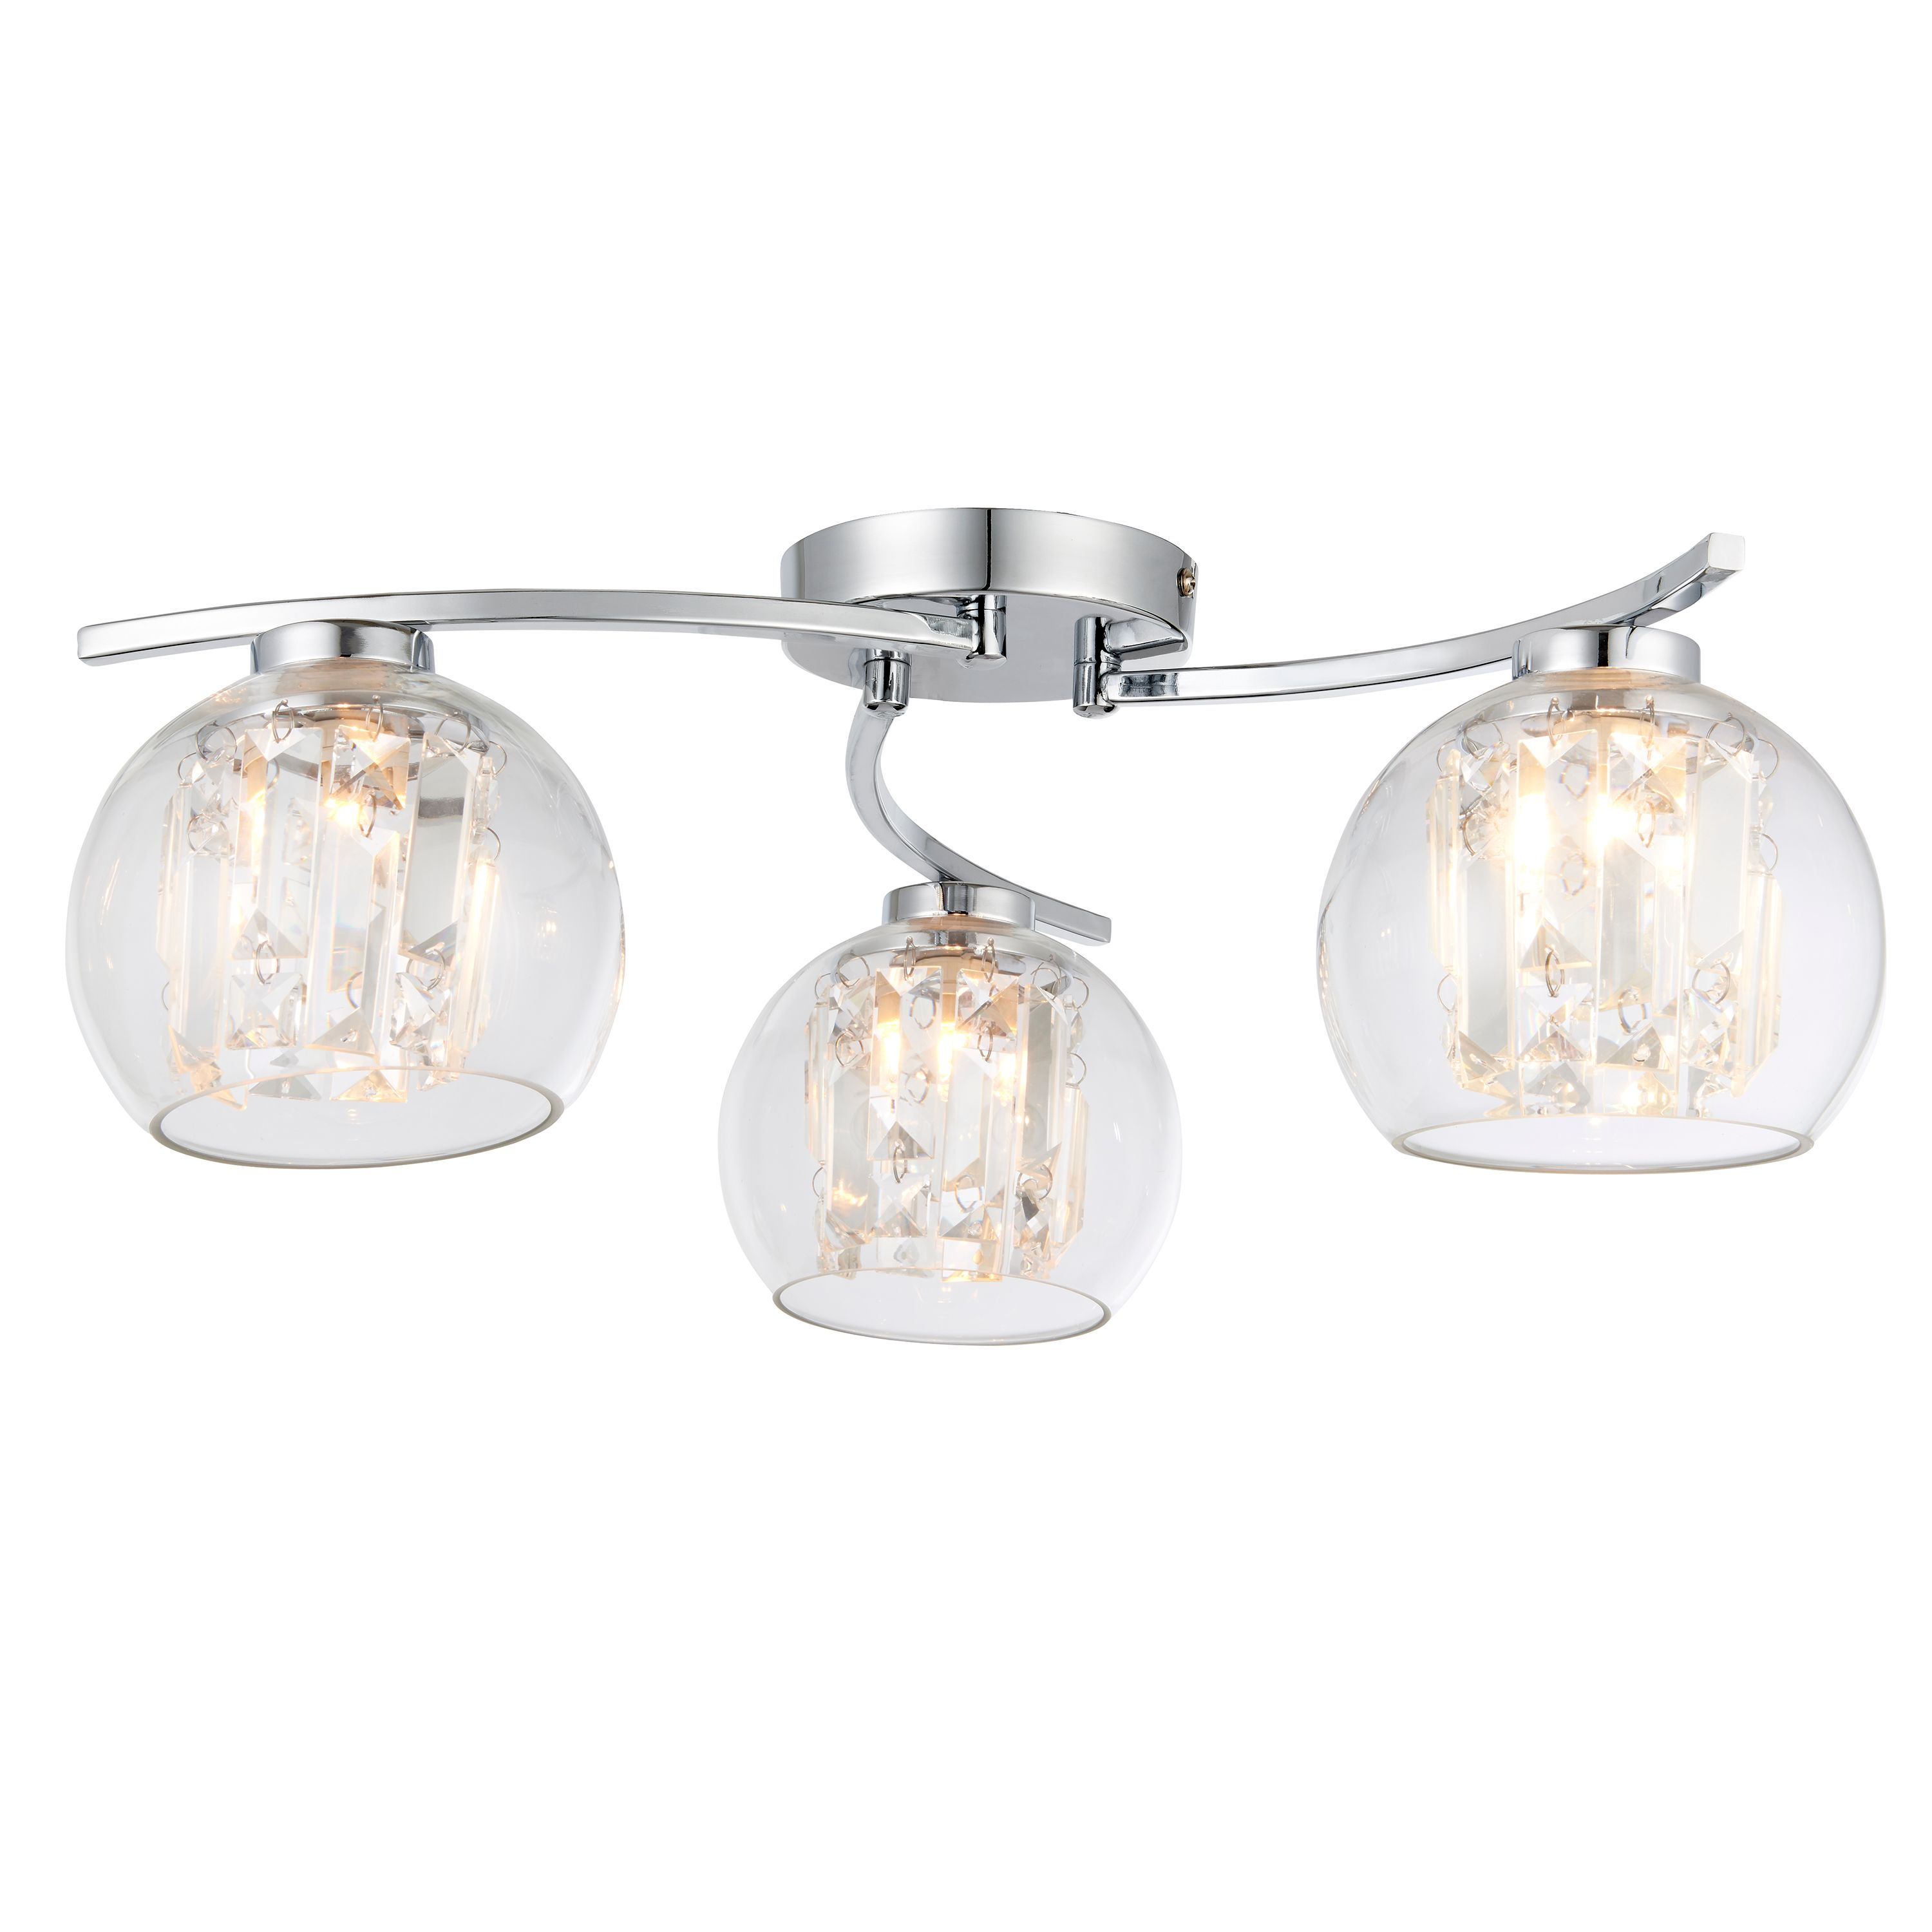 Glass Lamp Ceiling Chico Glass Sphere Chrome Effect 3 Lamp Ceiling Light